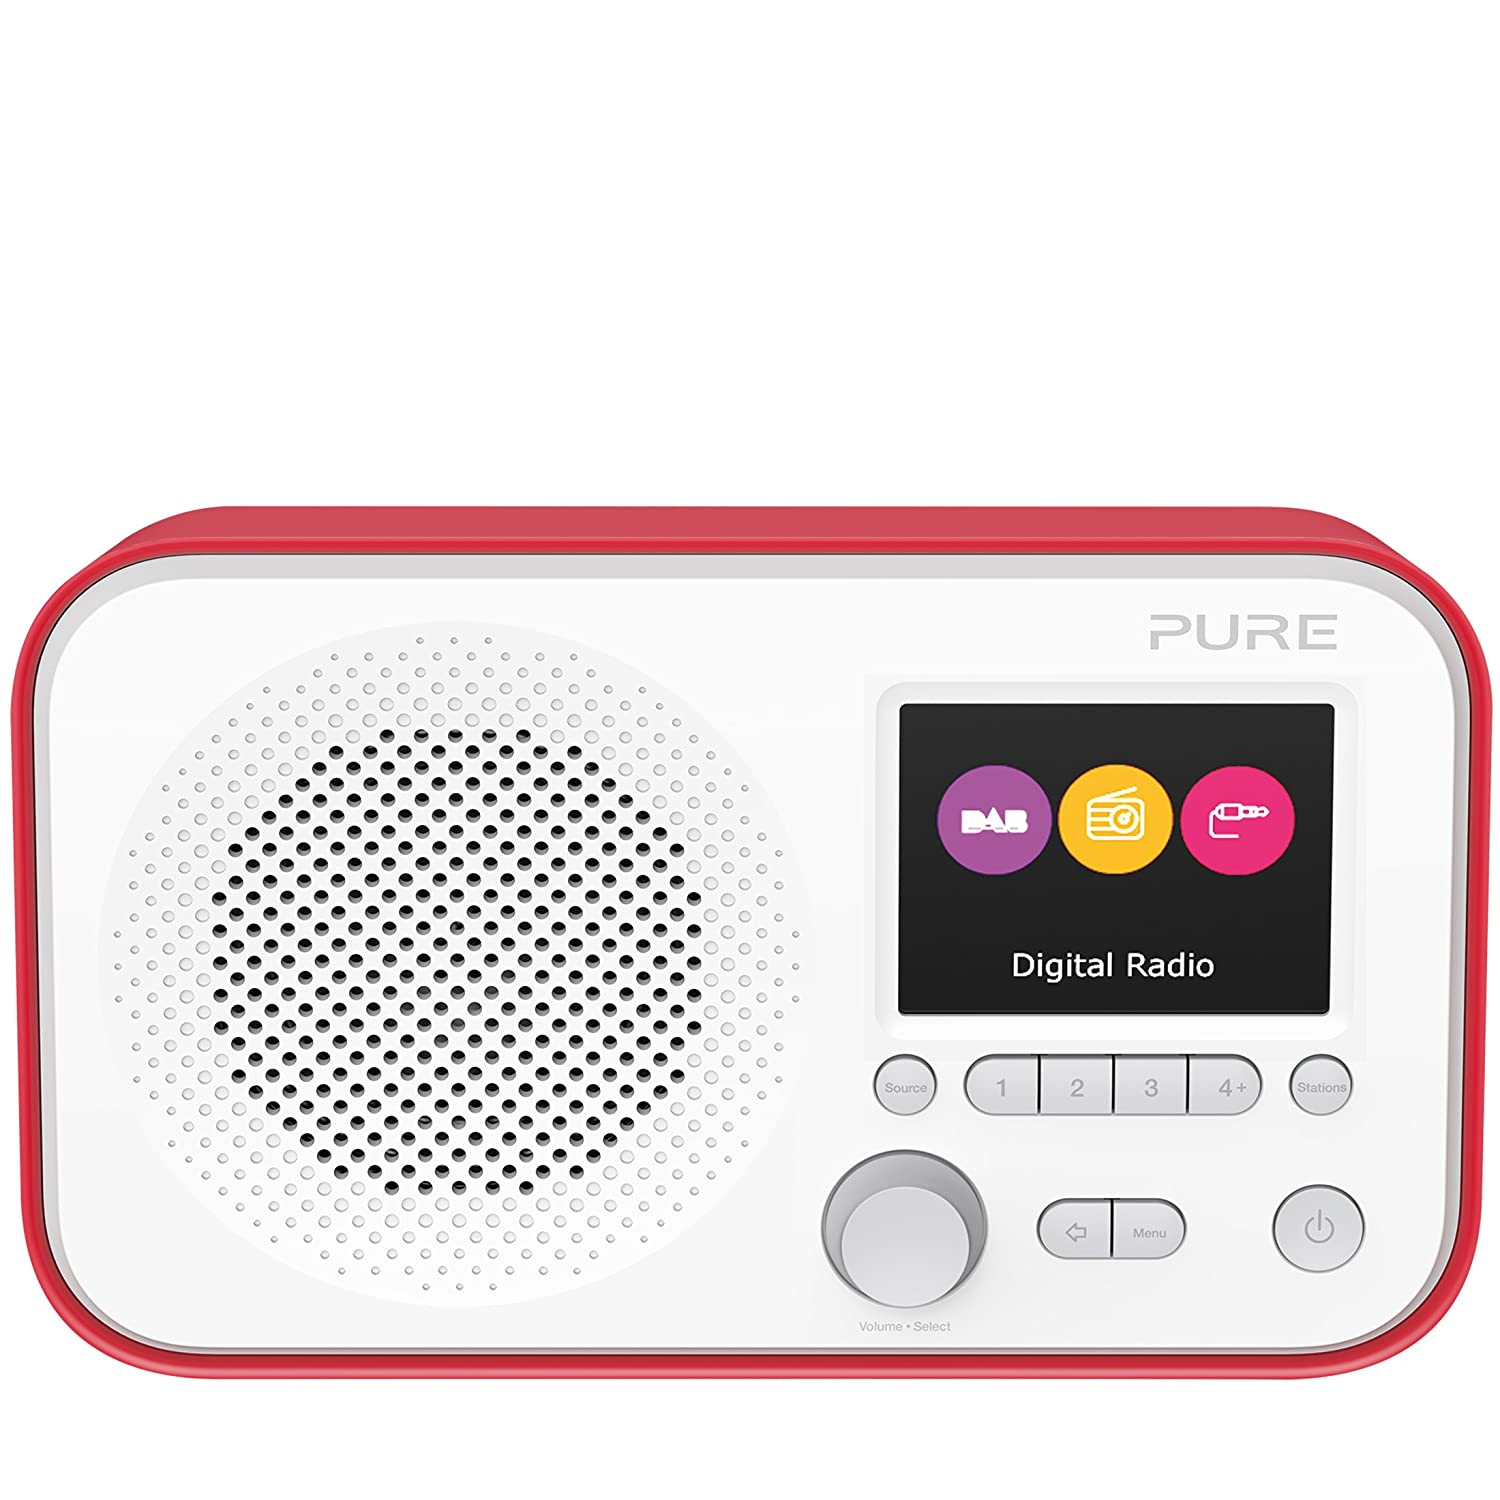 Headphones Output and 12 Station Presets AUX Input Wi-Fi Radio//Portable Radio Colour Screen Alarm Black Pure Elan IR3 Portable Internet Radio with Spotify Connect